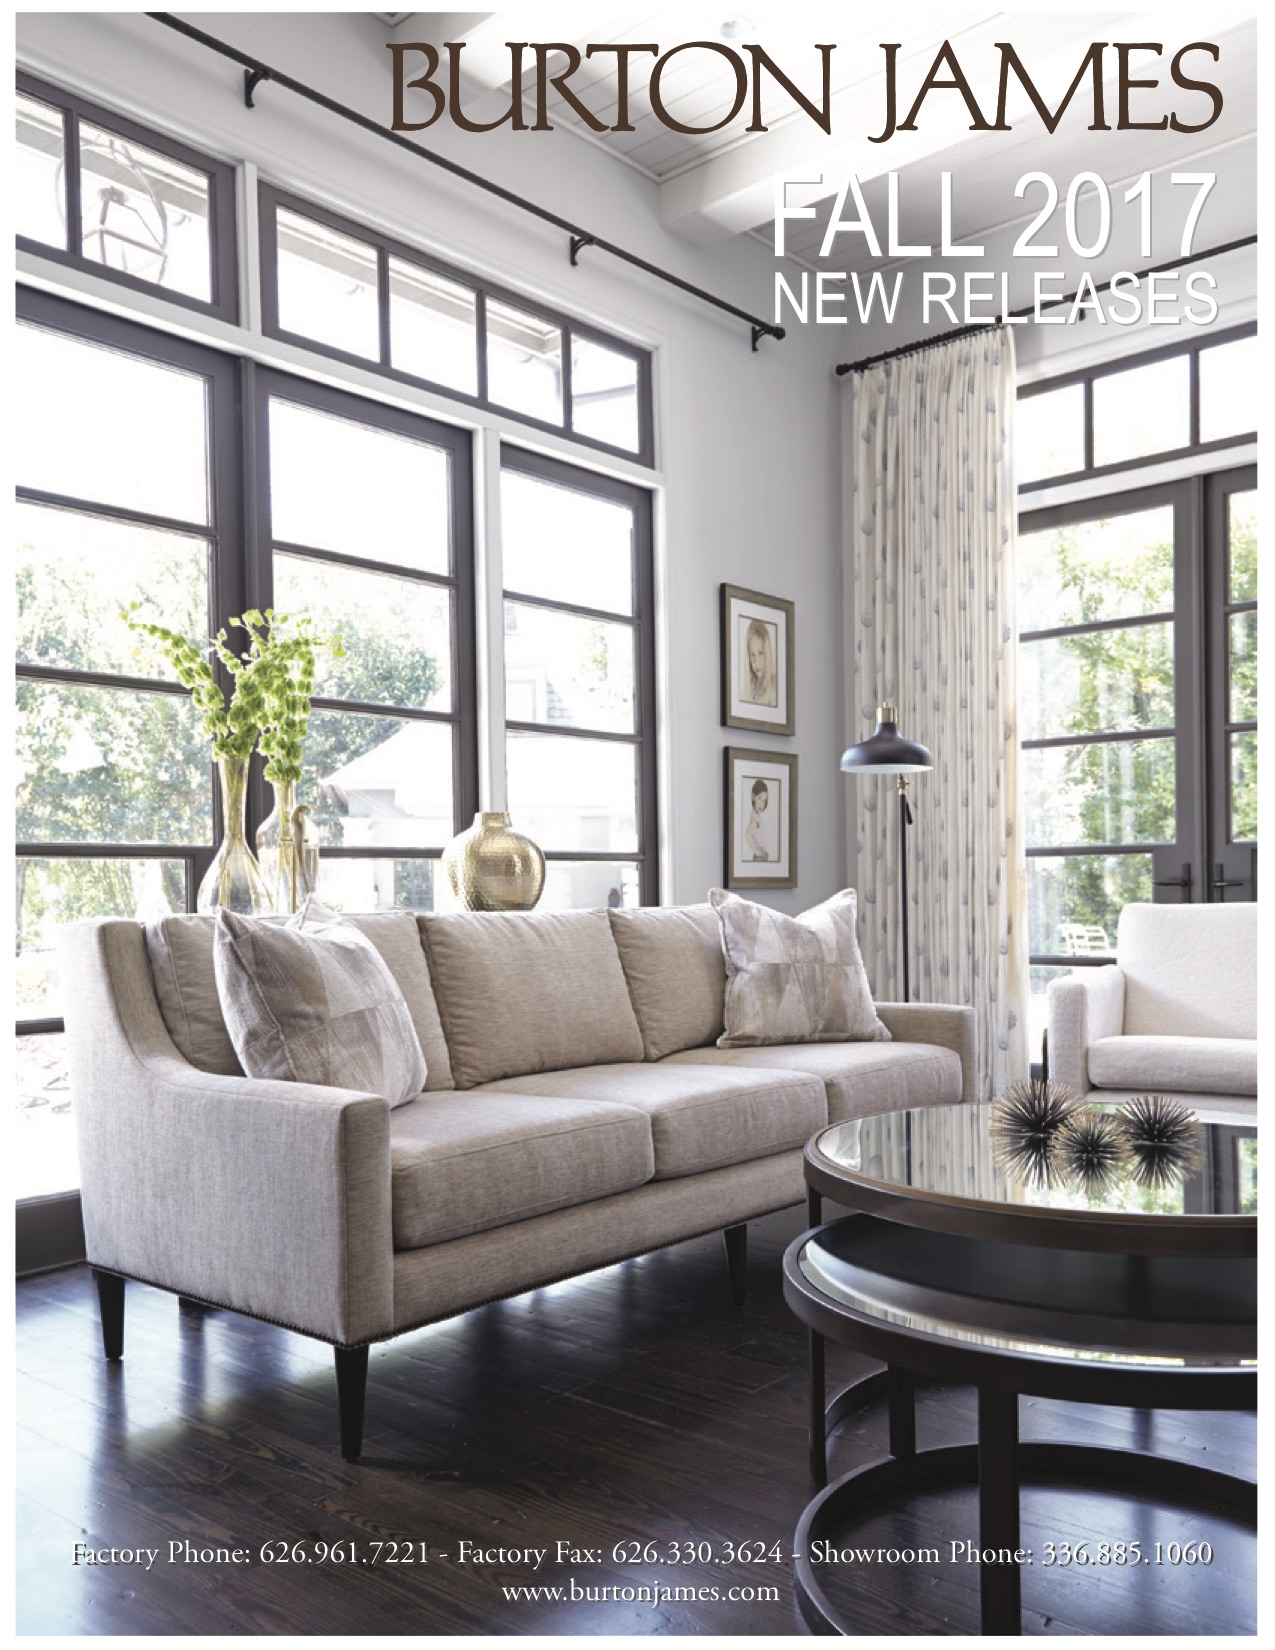 Whatu0027s New? [ Fall 2017 Introductions ]. By Burton James